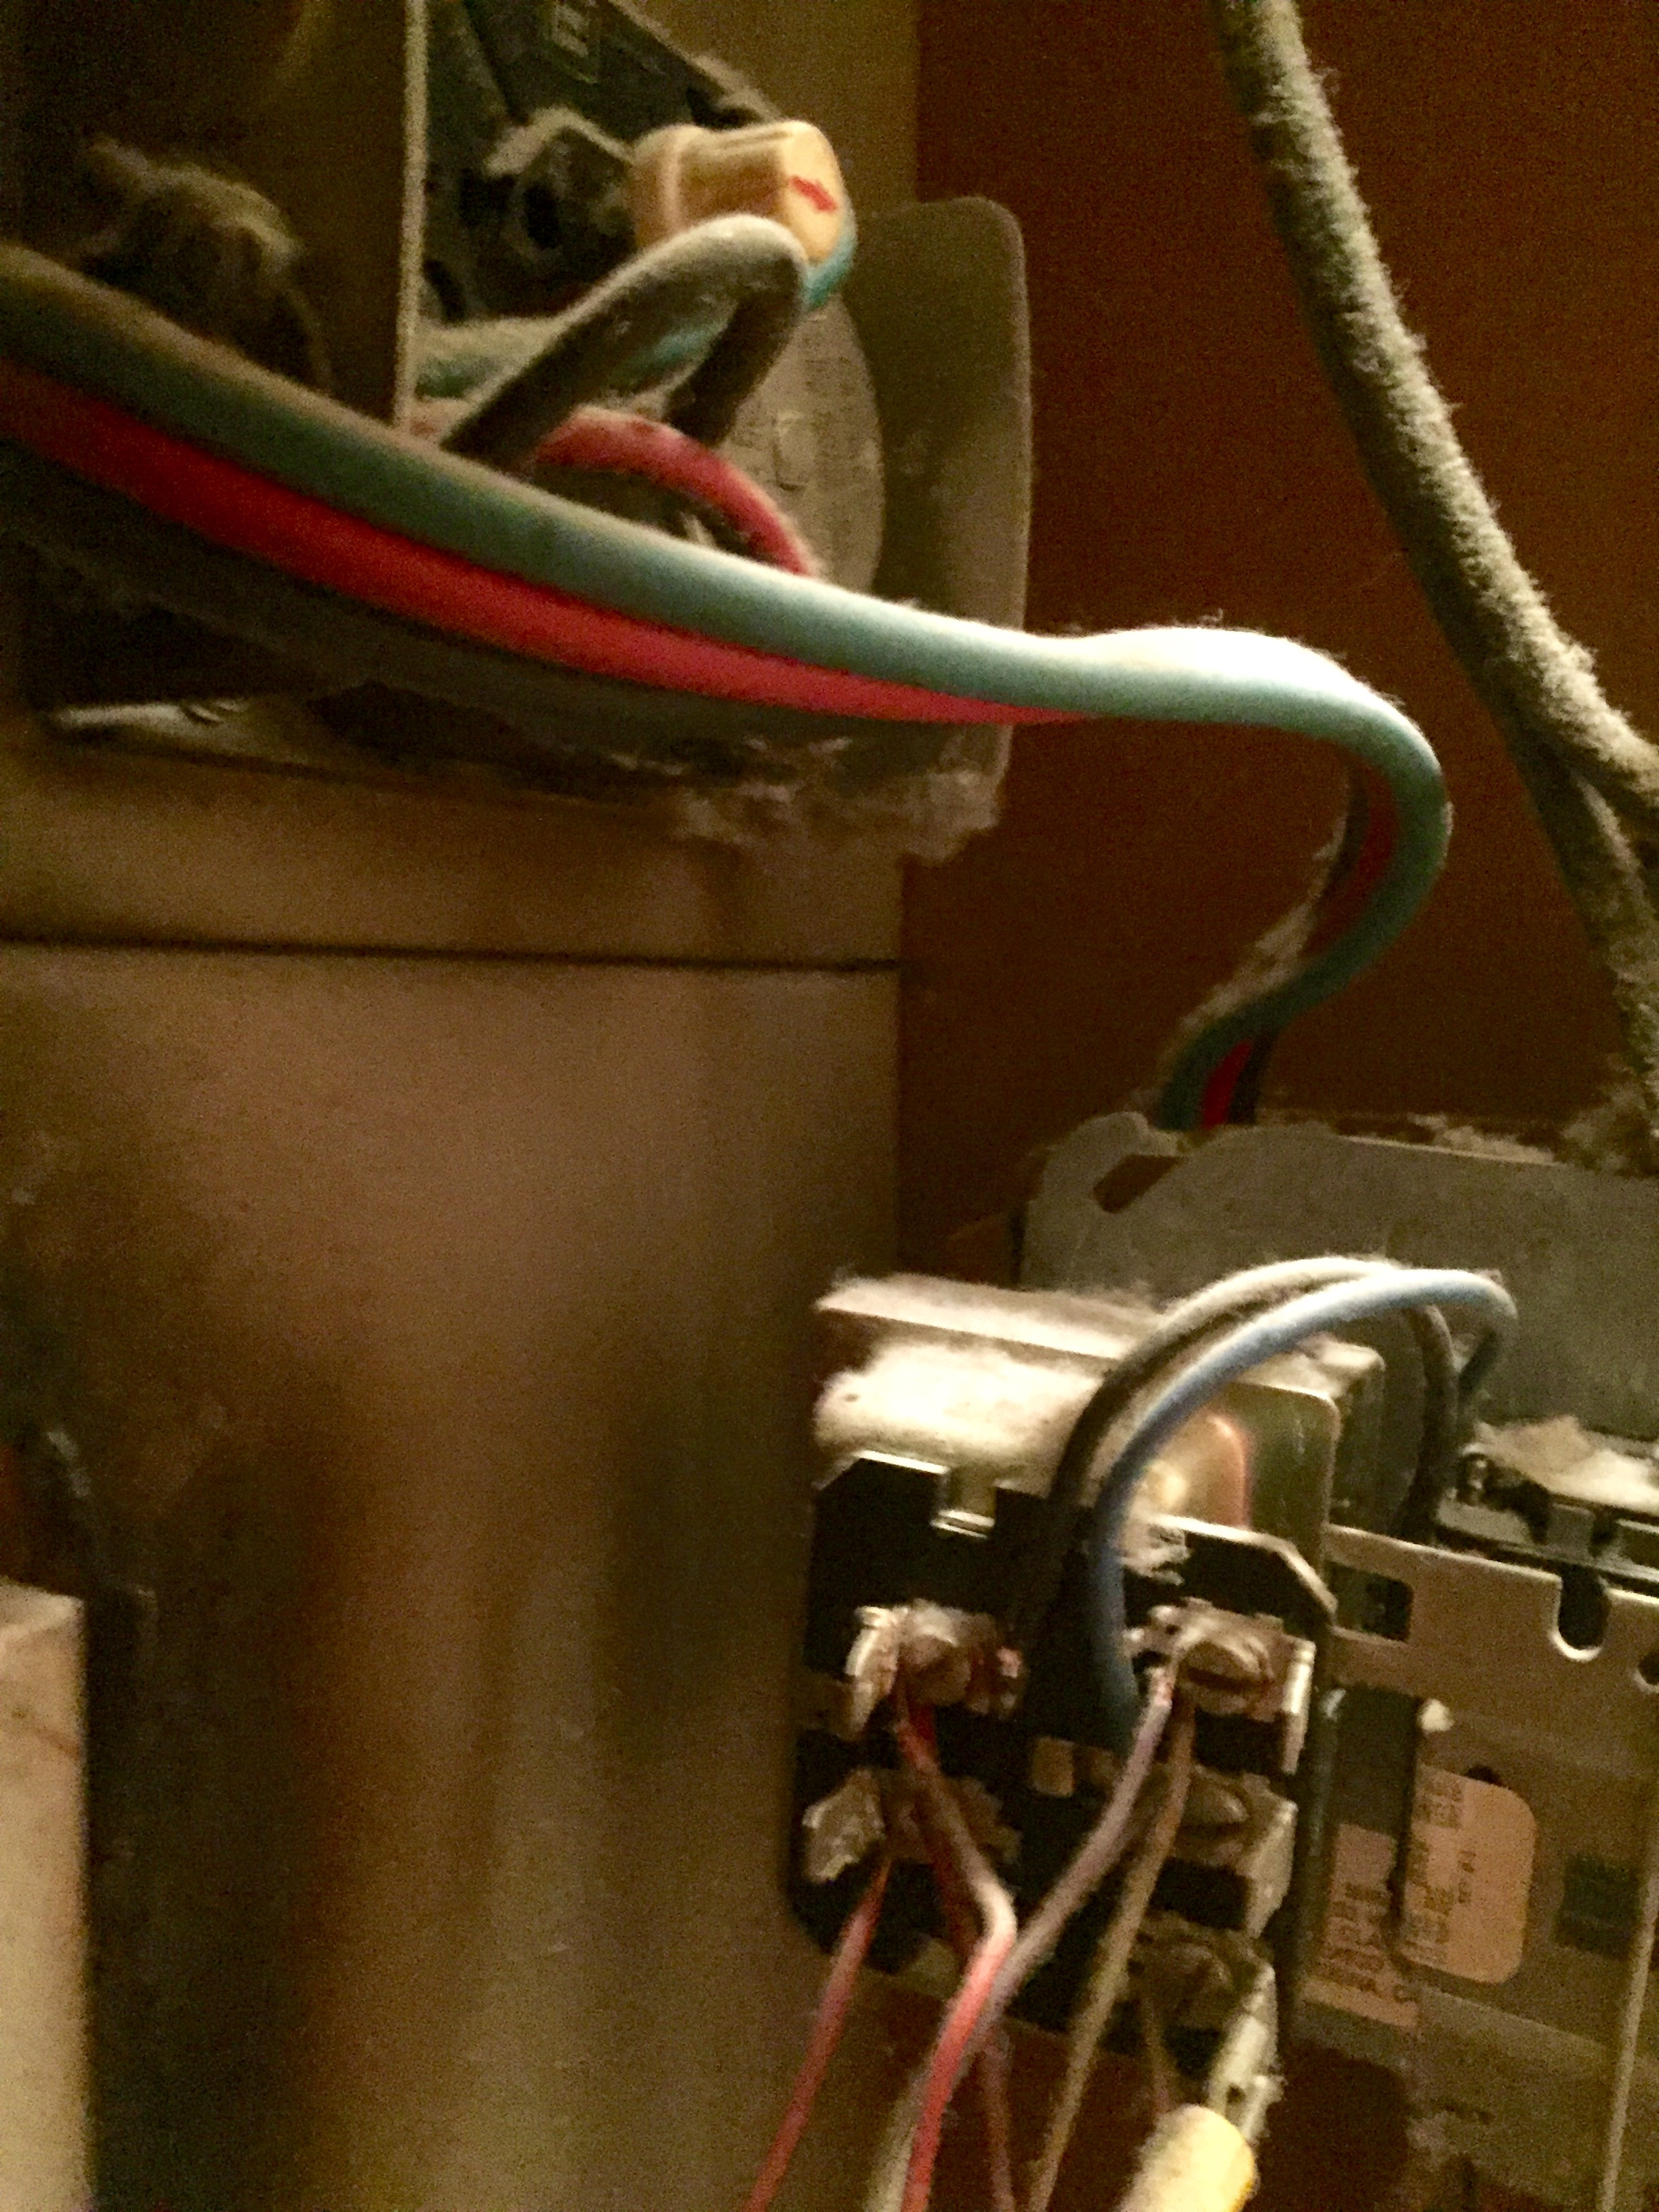 We Just Bought The Honeywell Ct87n Round Heat Cool Thermostat Wiring Diagram Imagejpeg